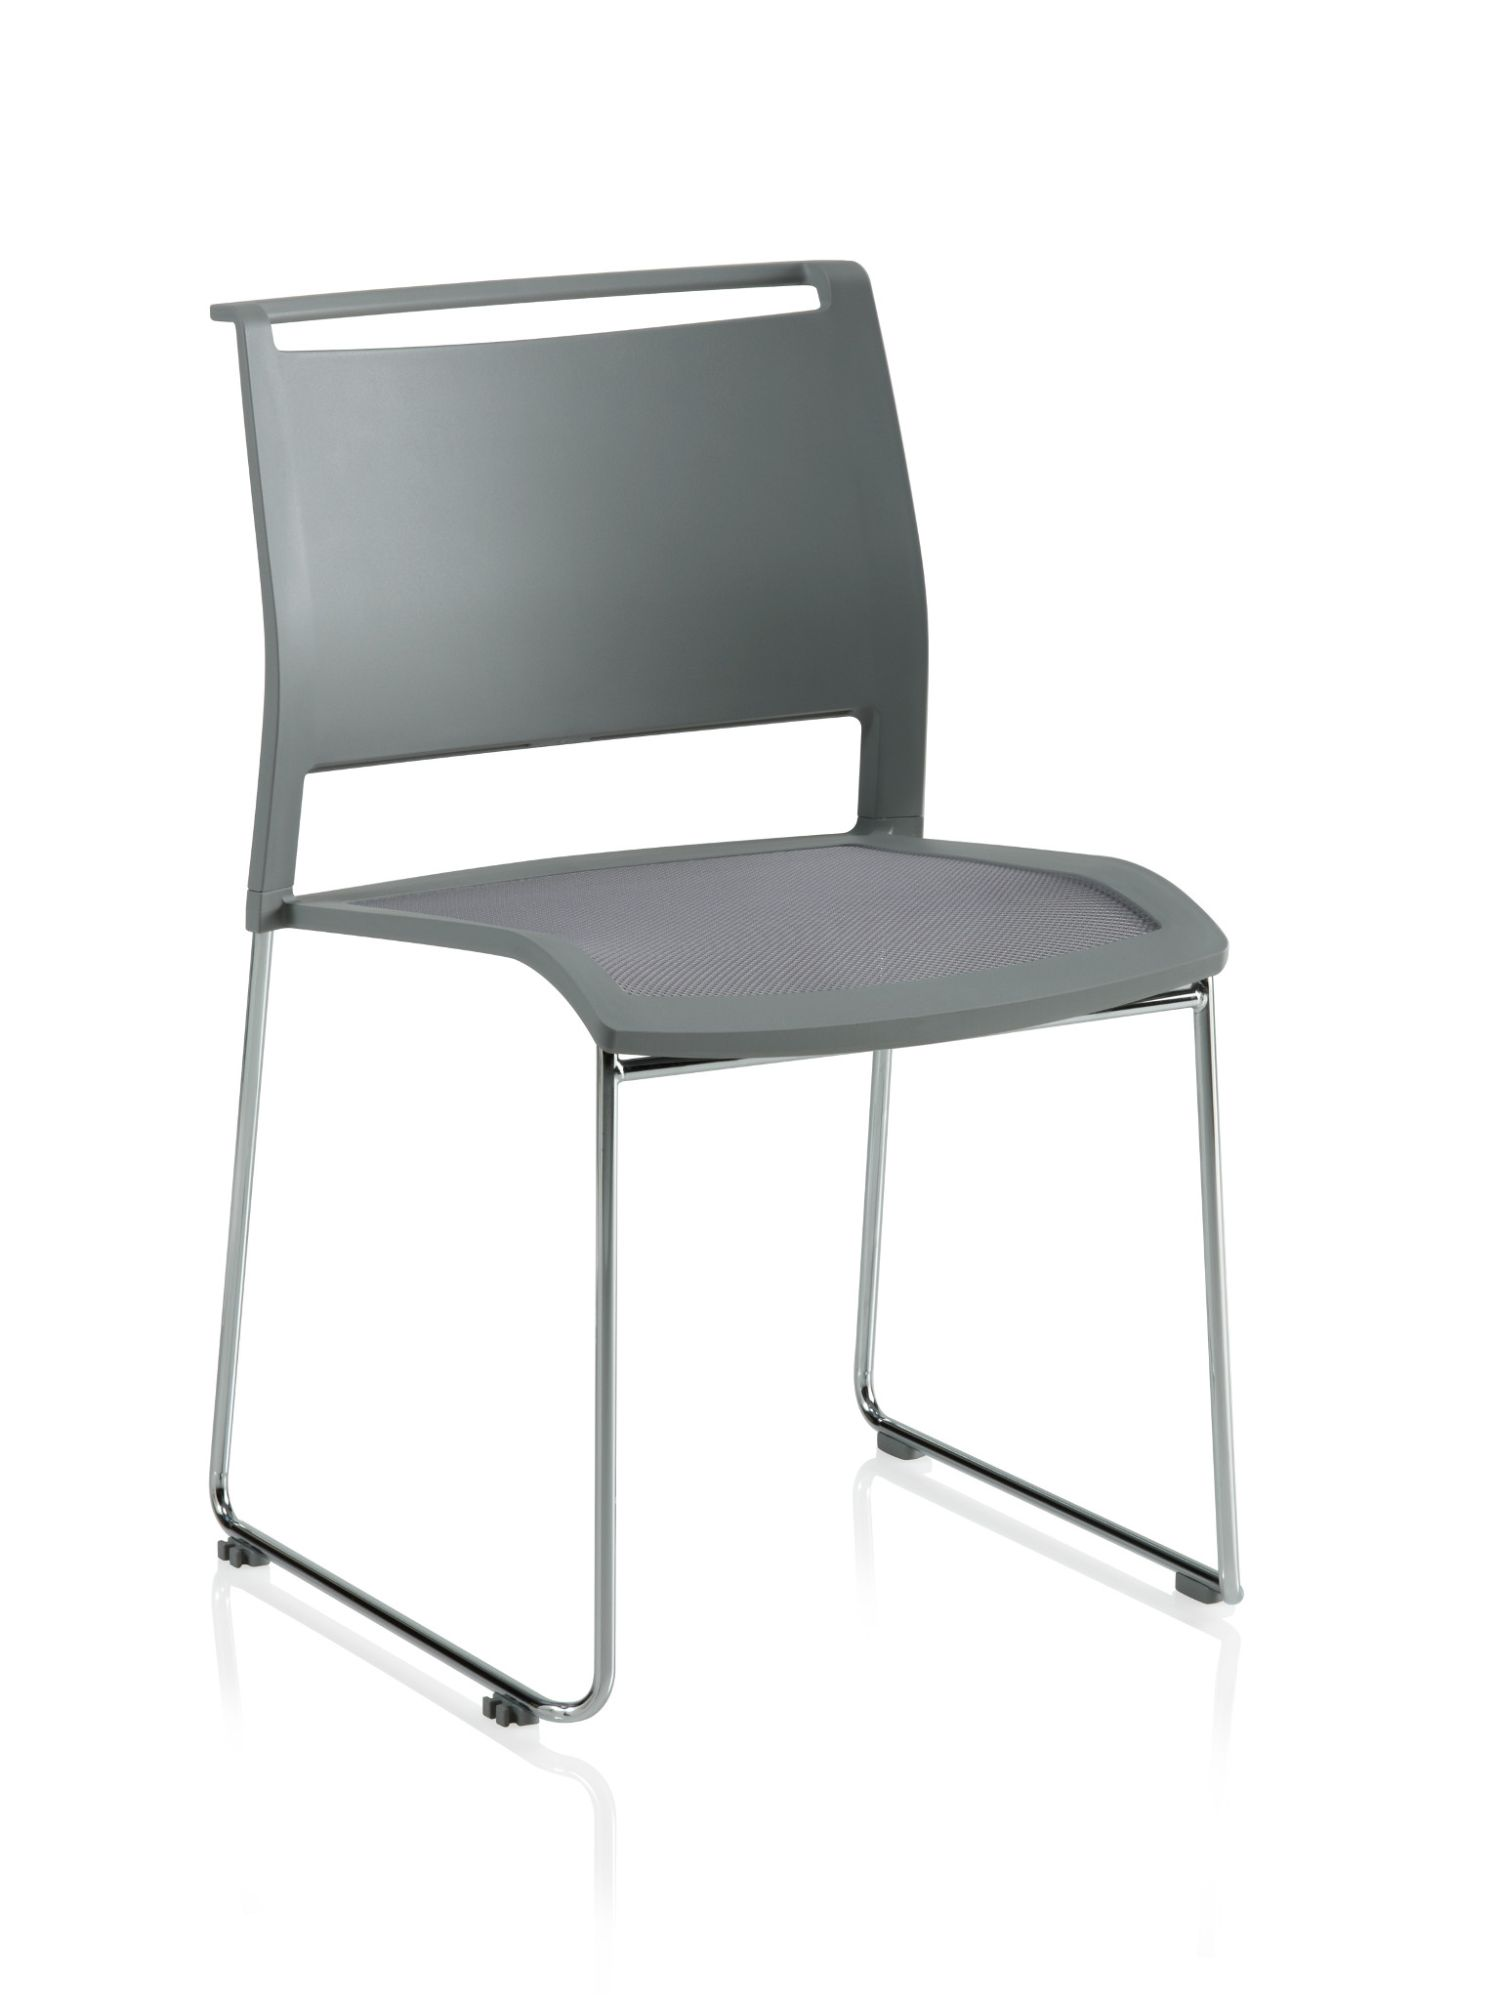 ki opt4 stone grey sled base chair with poly back and mesh seat